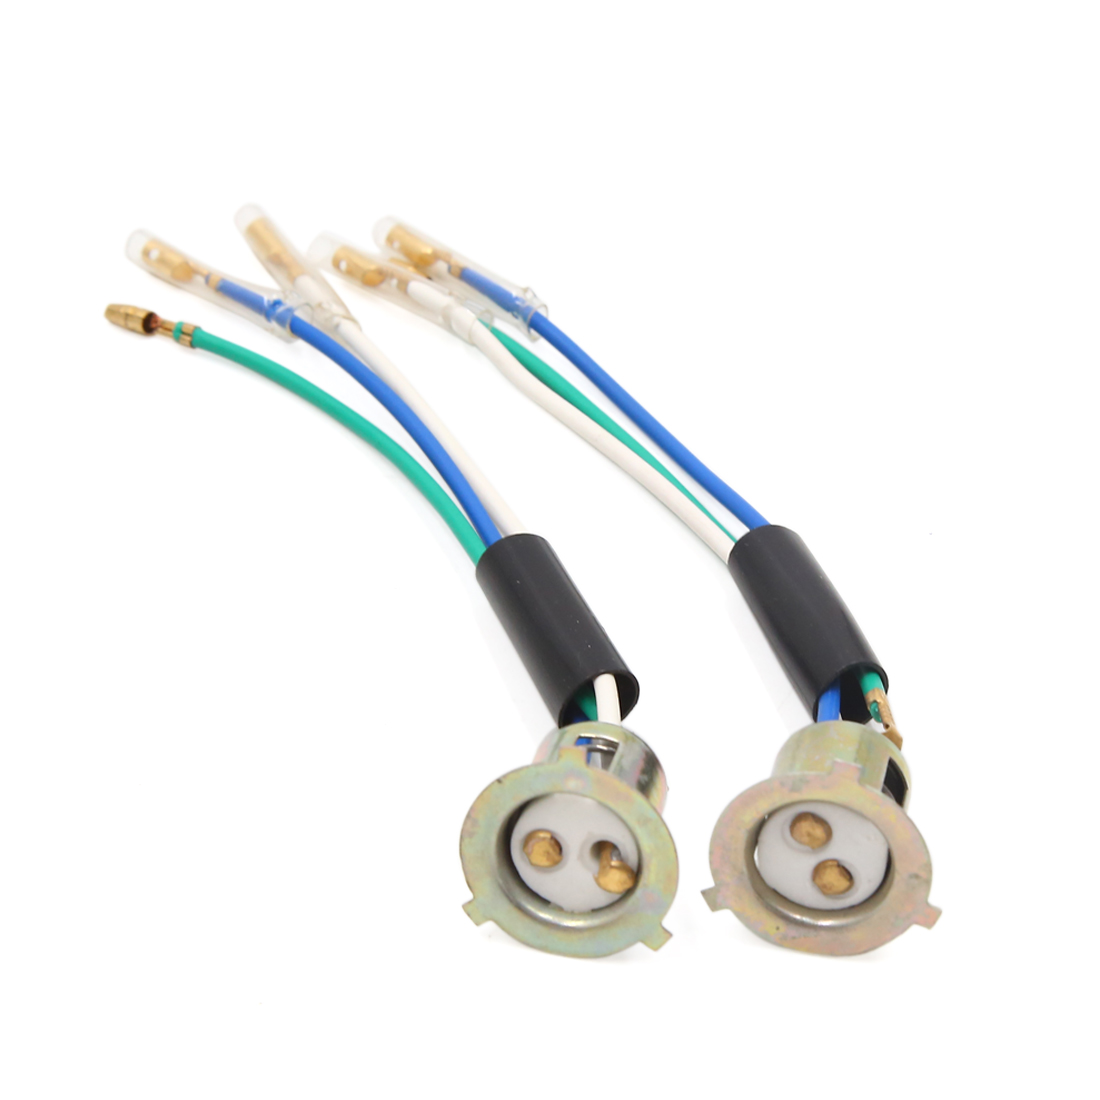 2pcs 3 Wire Motorcycle Headlight Wires Harness Connector Sockets for JH70